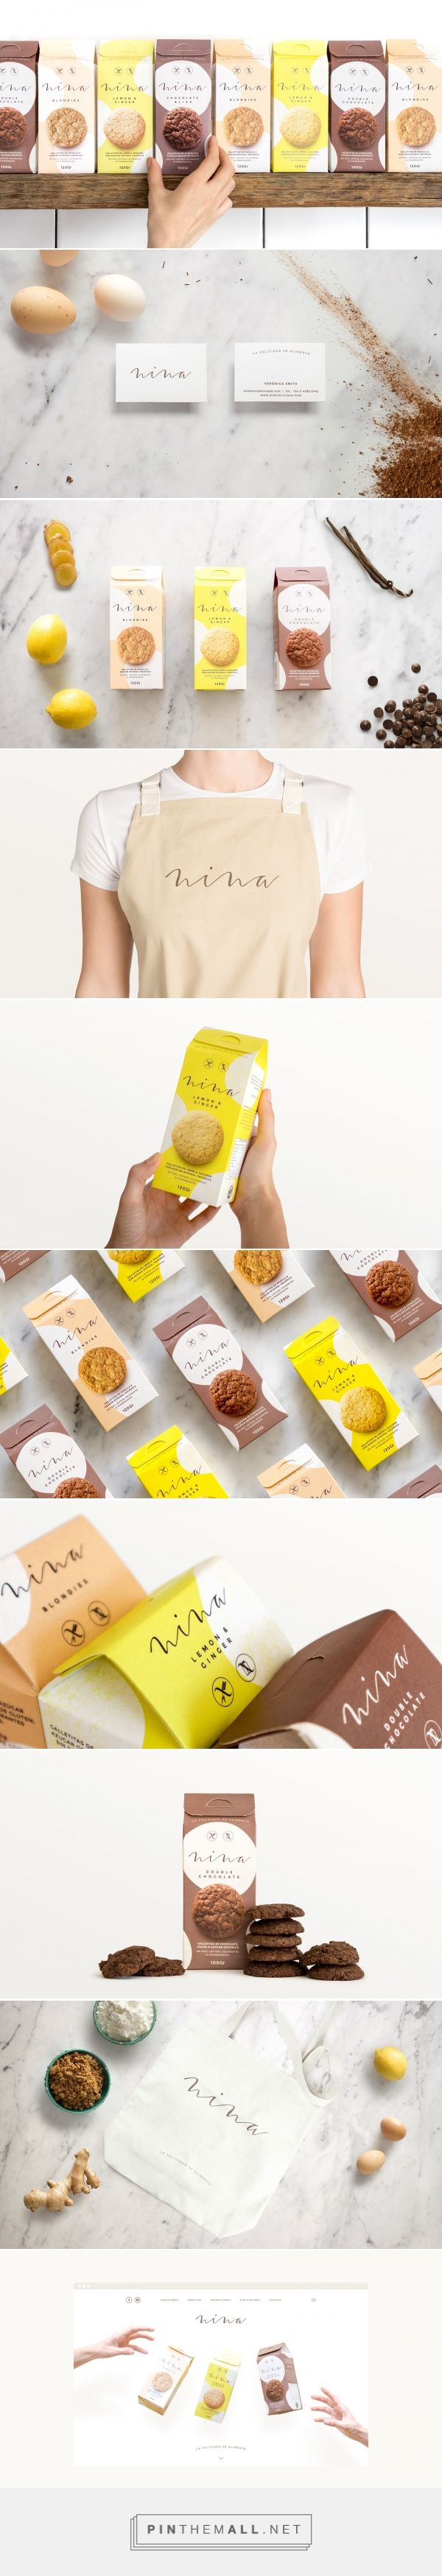 Nina cookies packaging design by Asís - http://www.packagingoftheworld.com/2017/12/nina.html